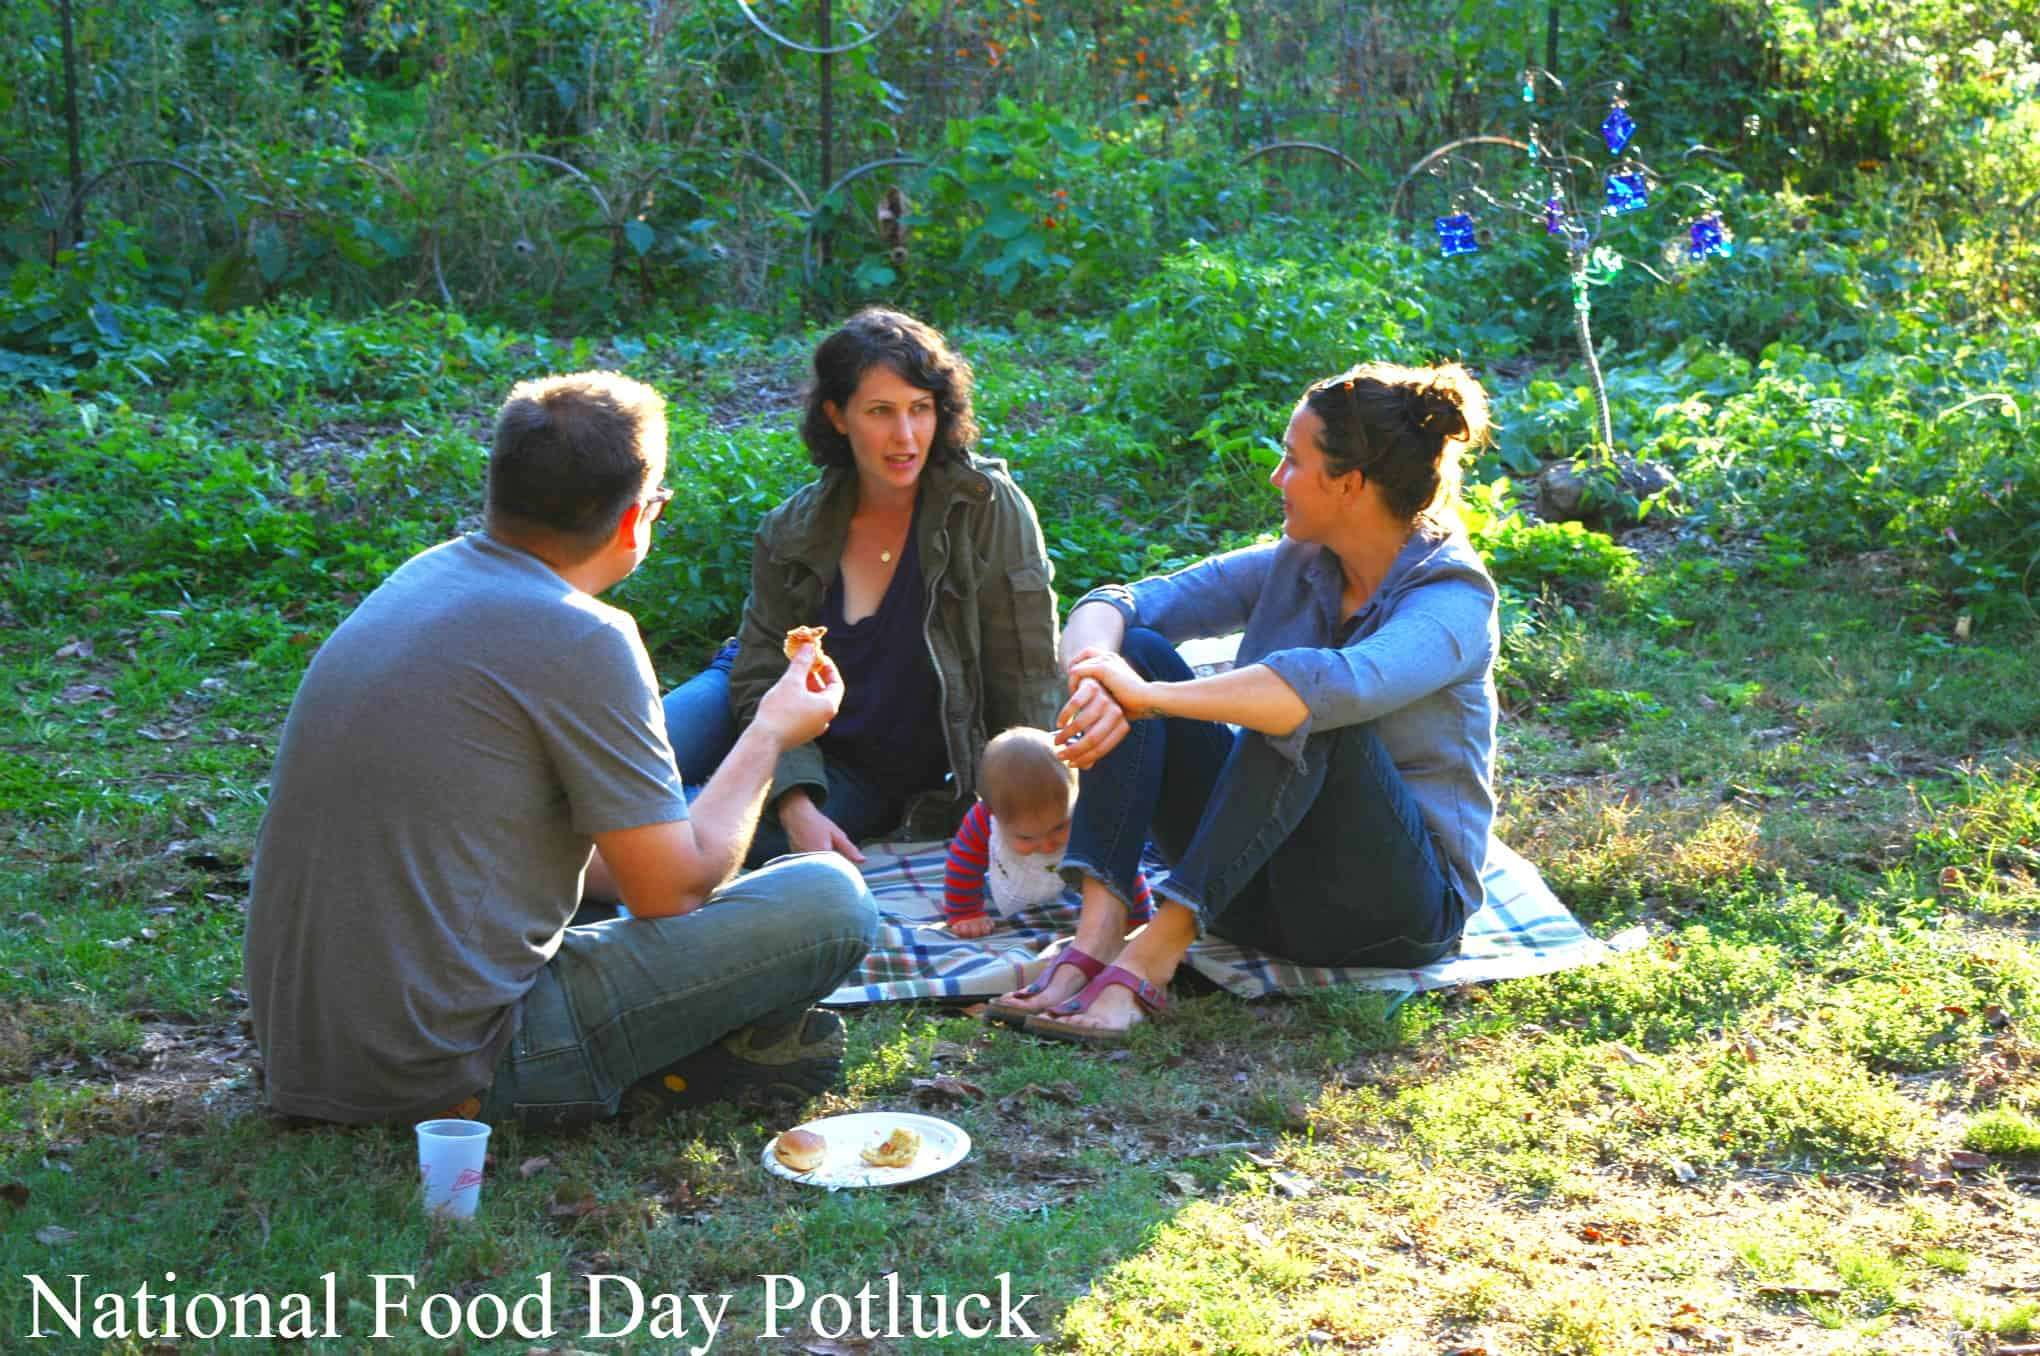 national-food-day-potluck